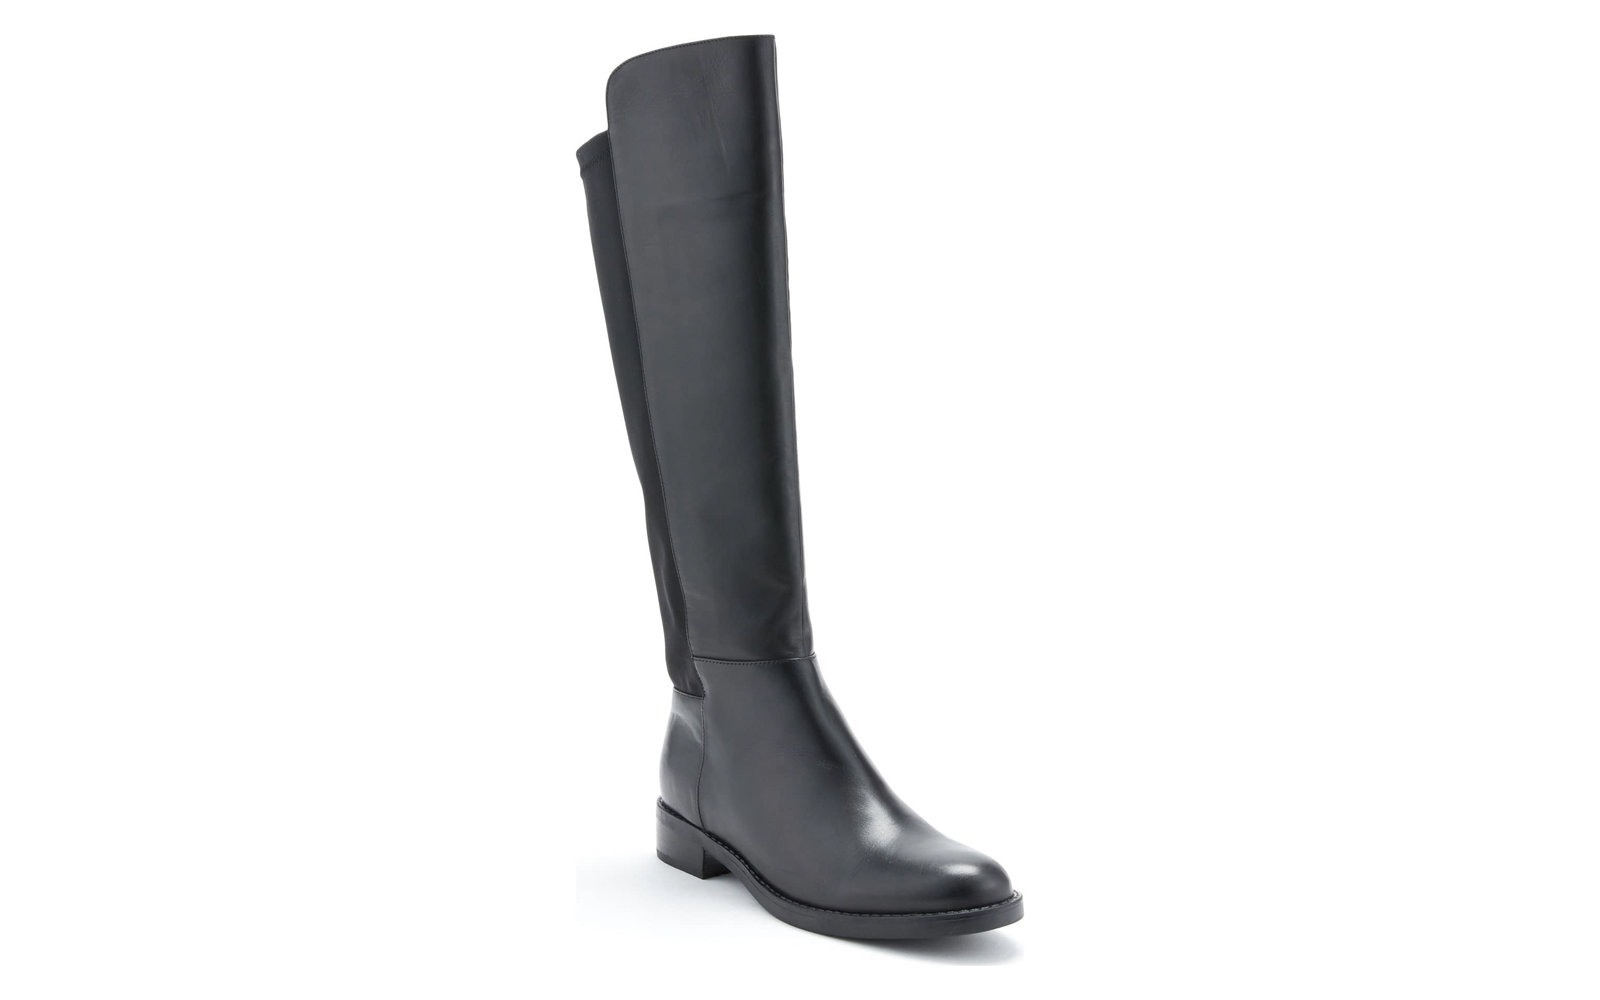 e6c1d003167 Blondo  Ellie  Waterproof Knee High Riding Boot. Best Boots on Sale at  Nordstrom